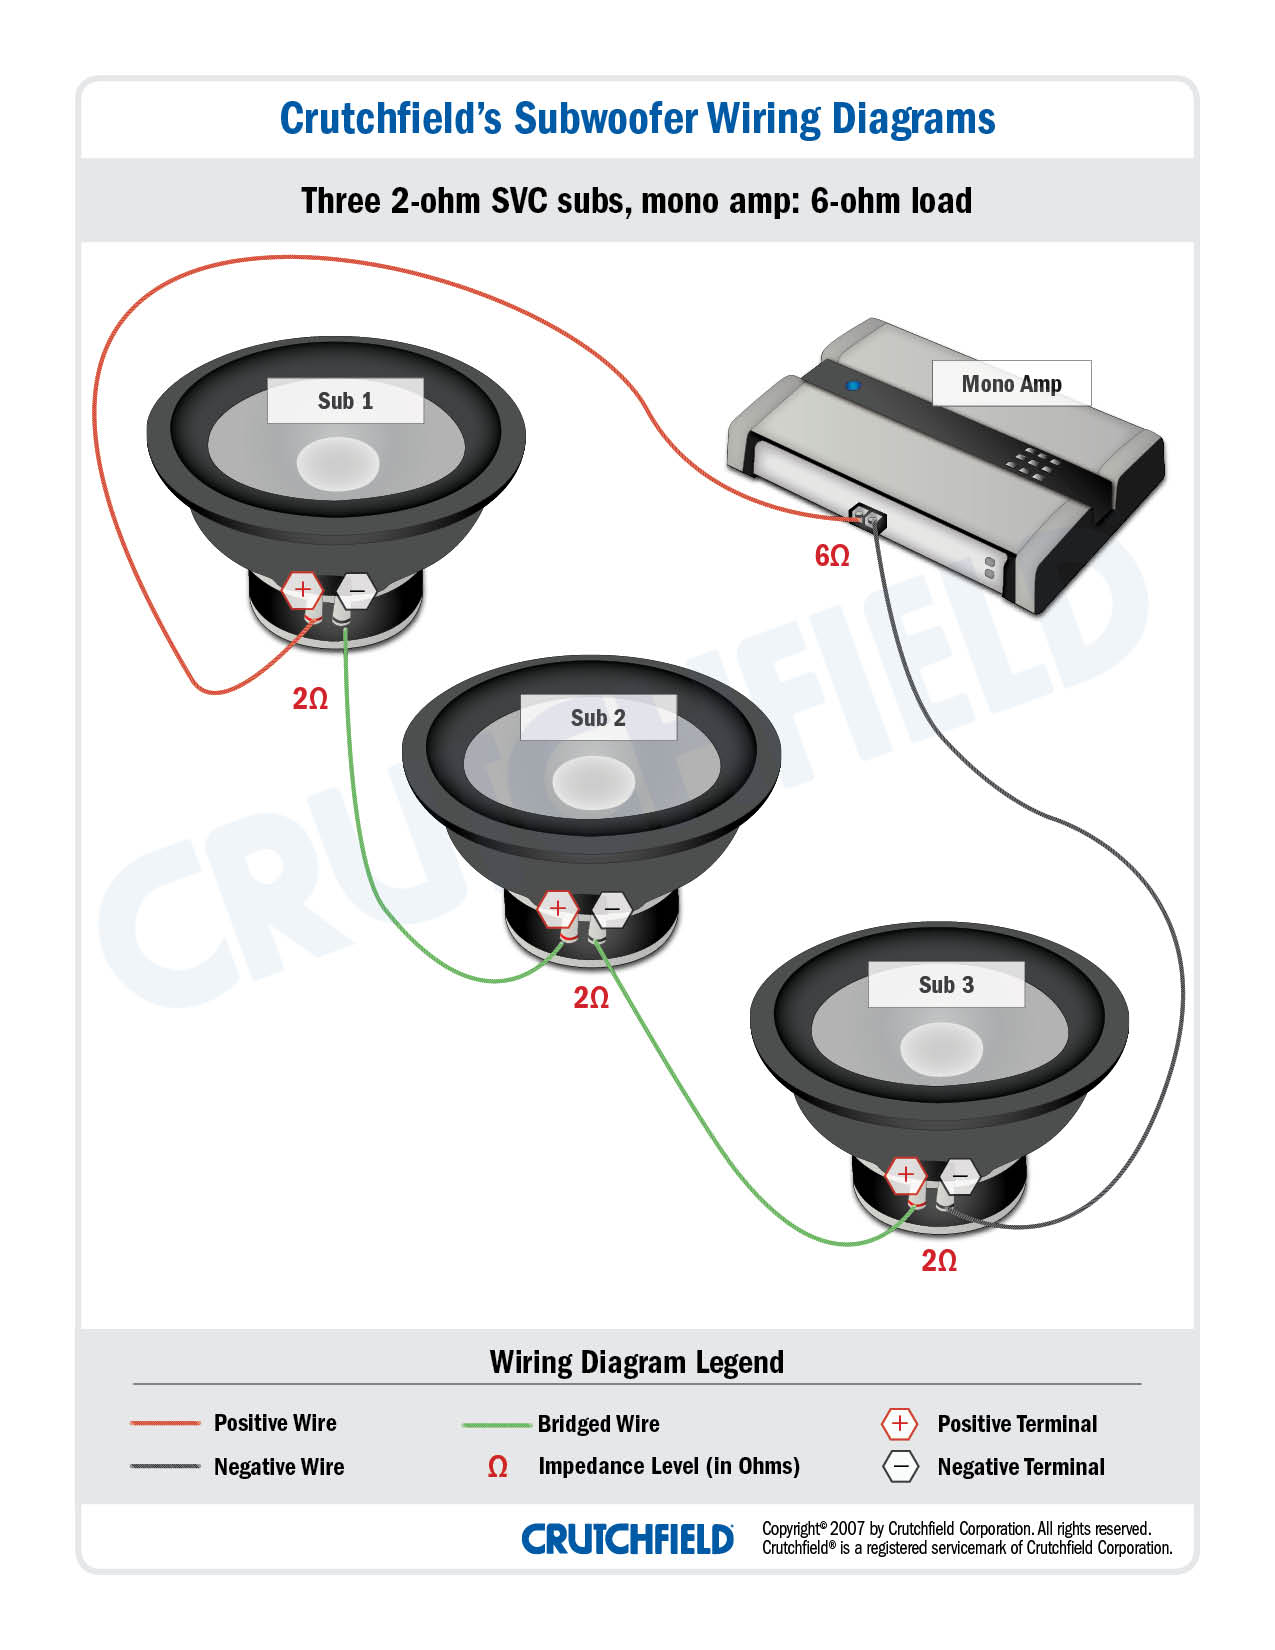 Sub Wiring Car Speakers Not Lossing Diagram Motorcycle Stereo Speaker Subwoofer Diagrams How To Wire Your Subs Rh Crutchfield Com 3sixty3 And Tweeter